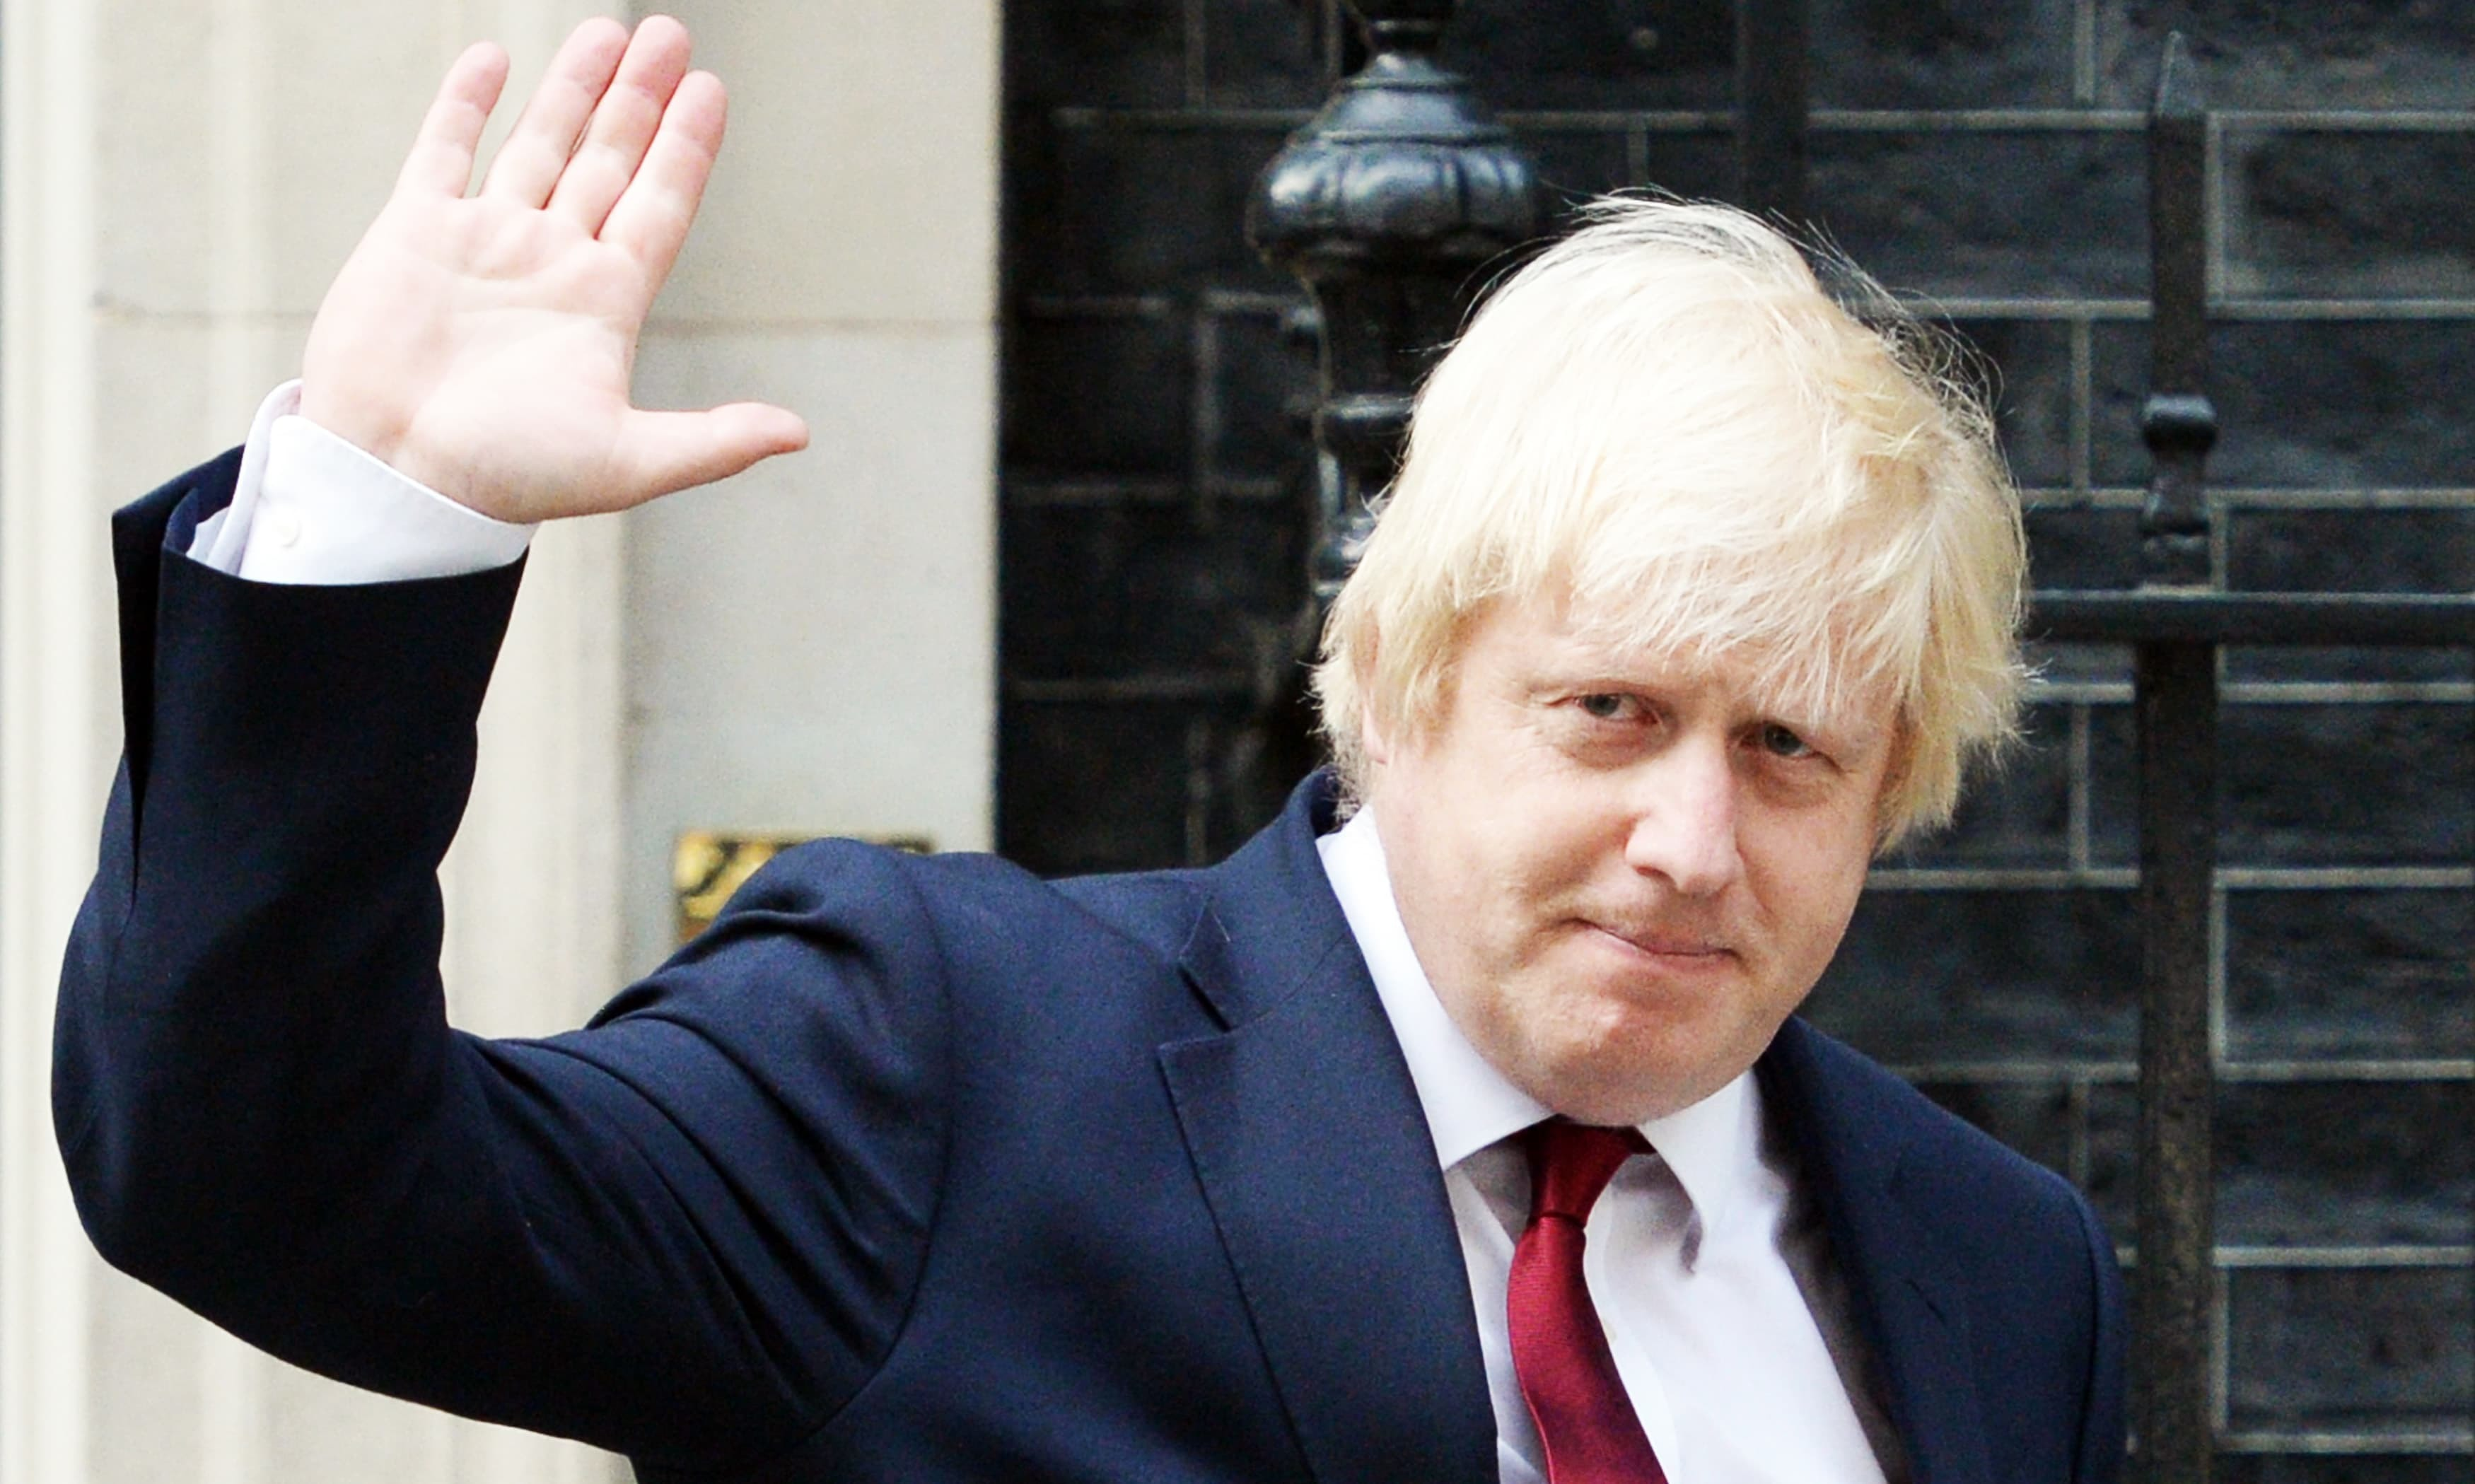 Johnson says he intends to run for British premier's slot